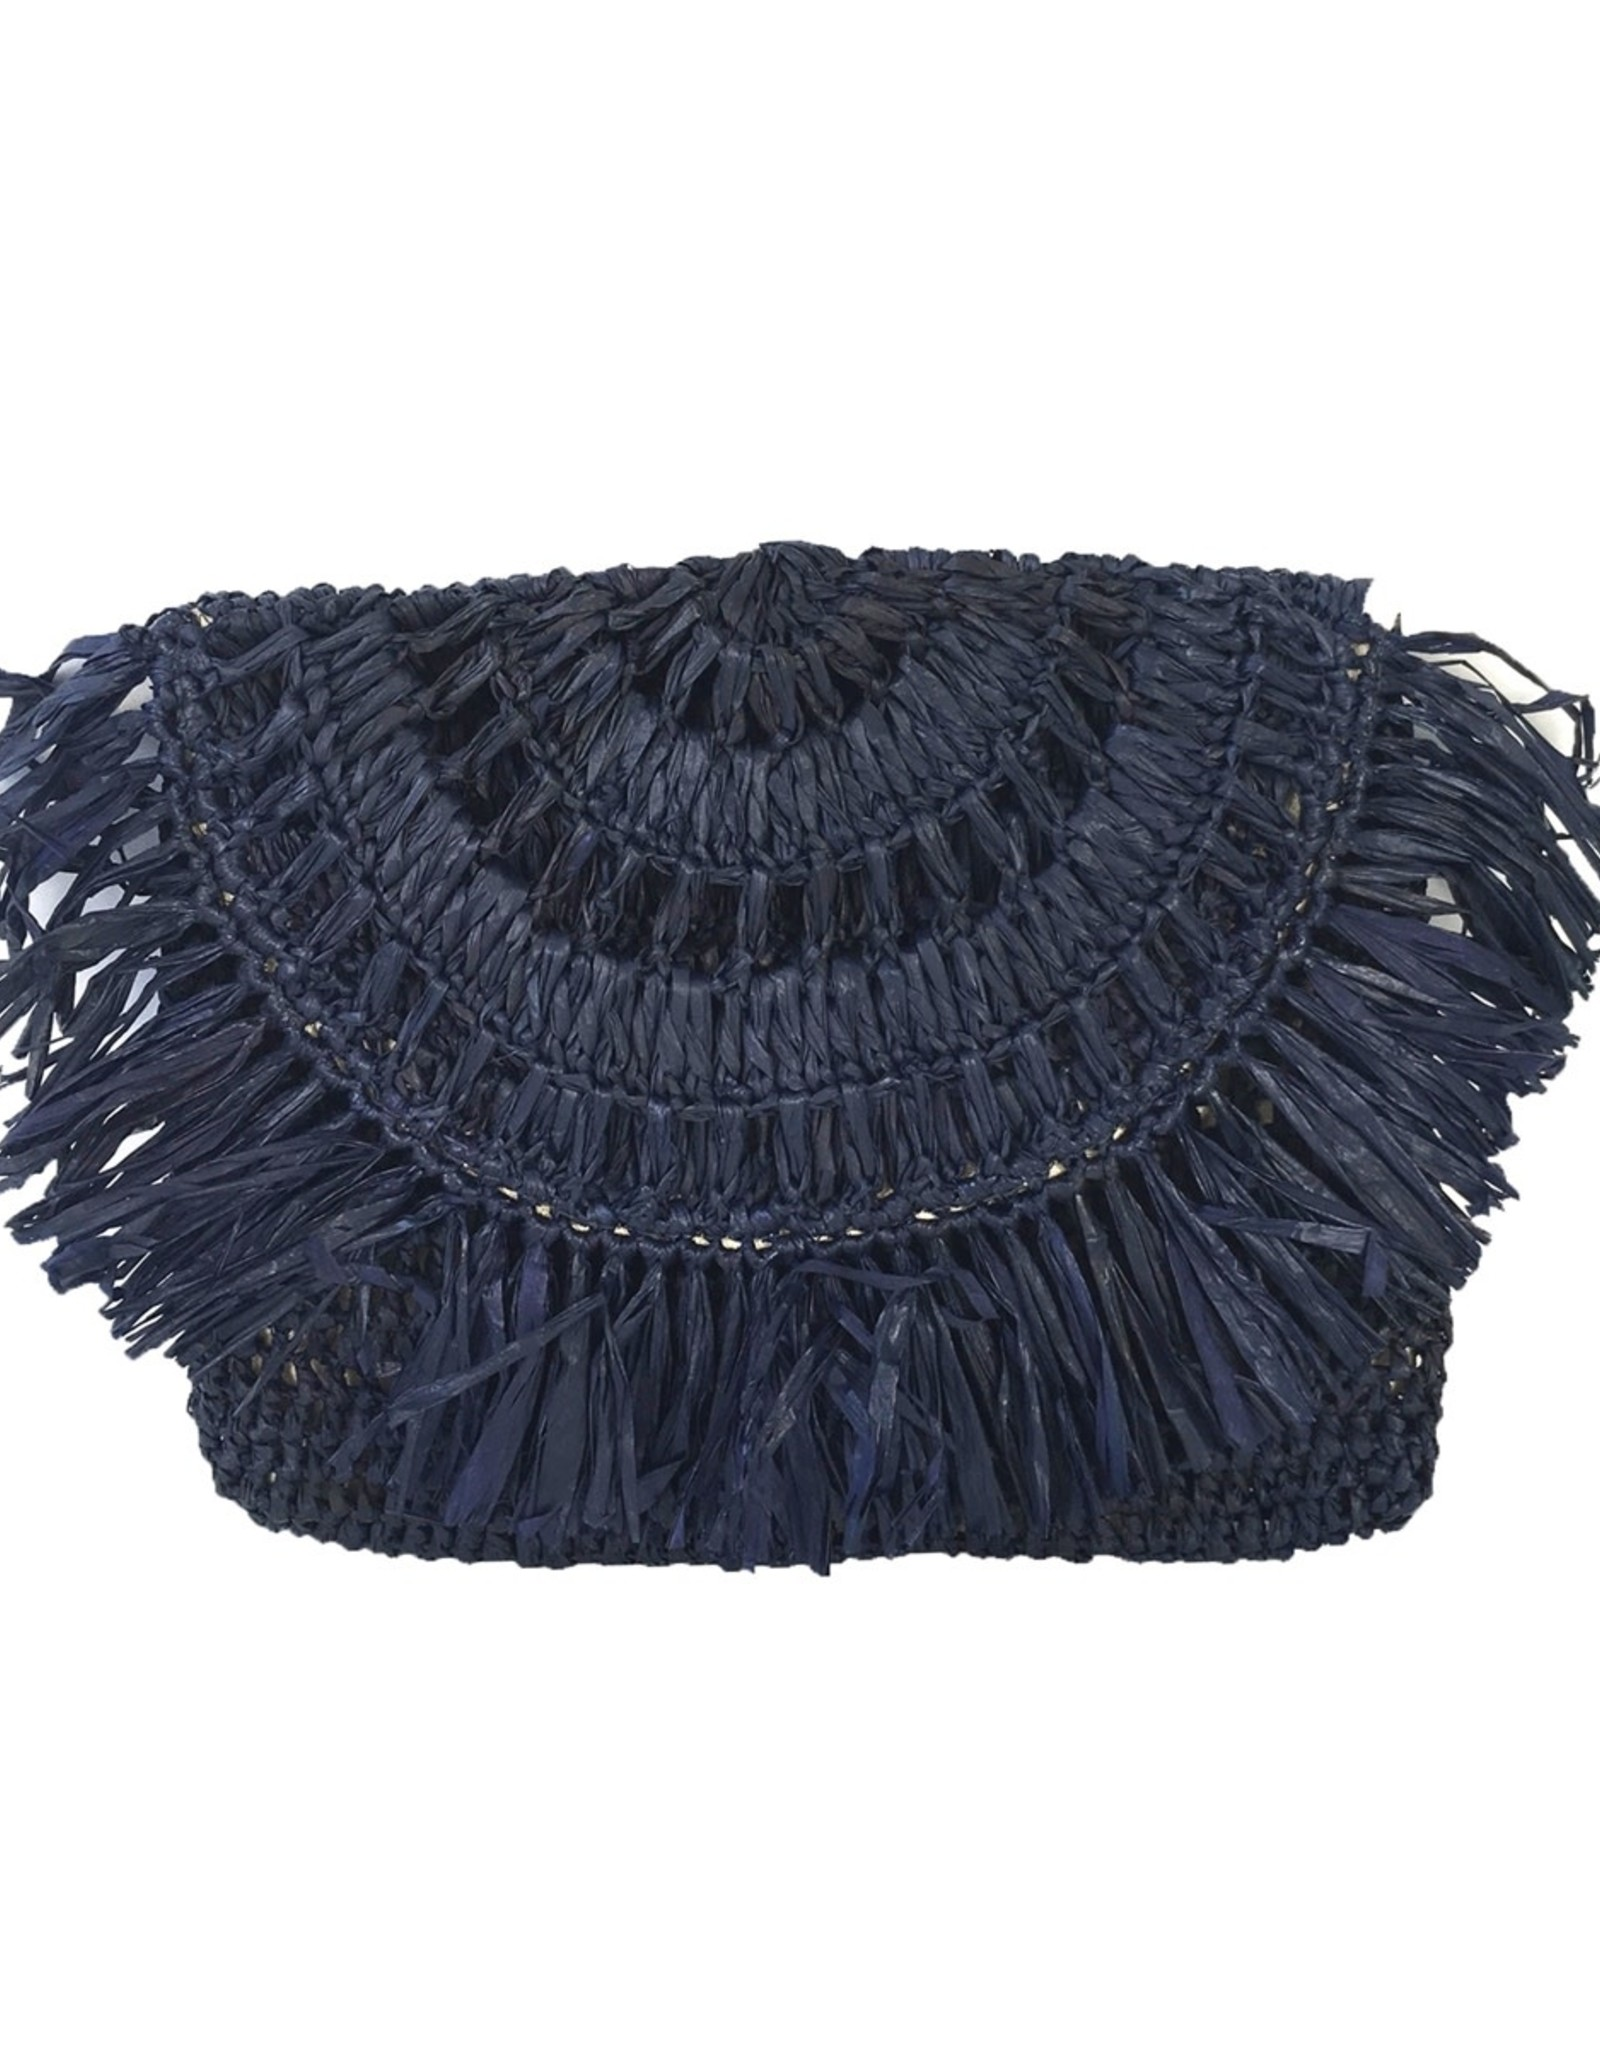 Gifts Mia Fringe Pouch in Navy